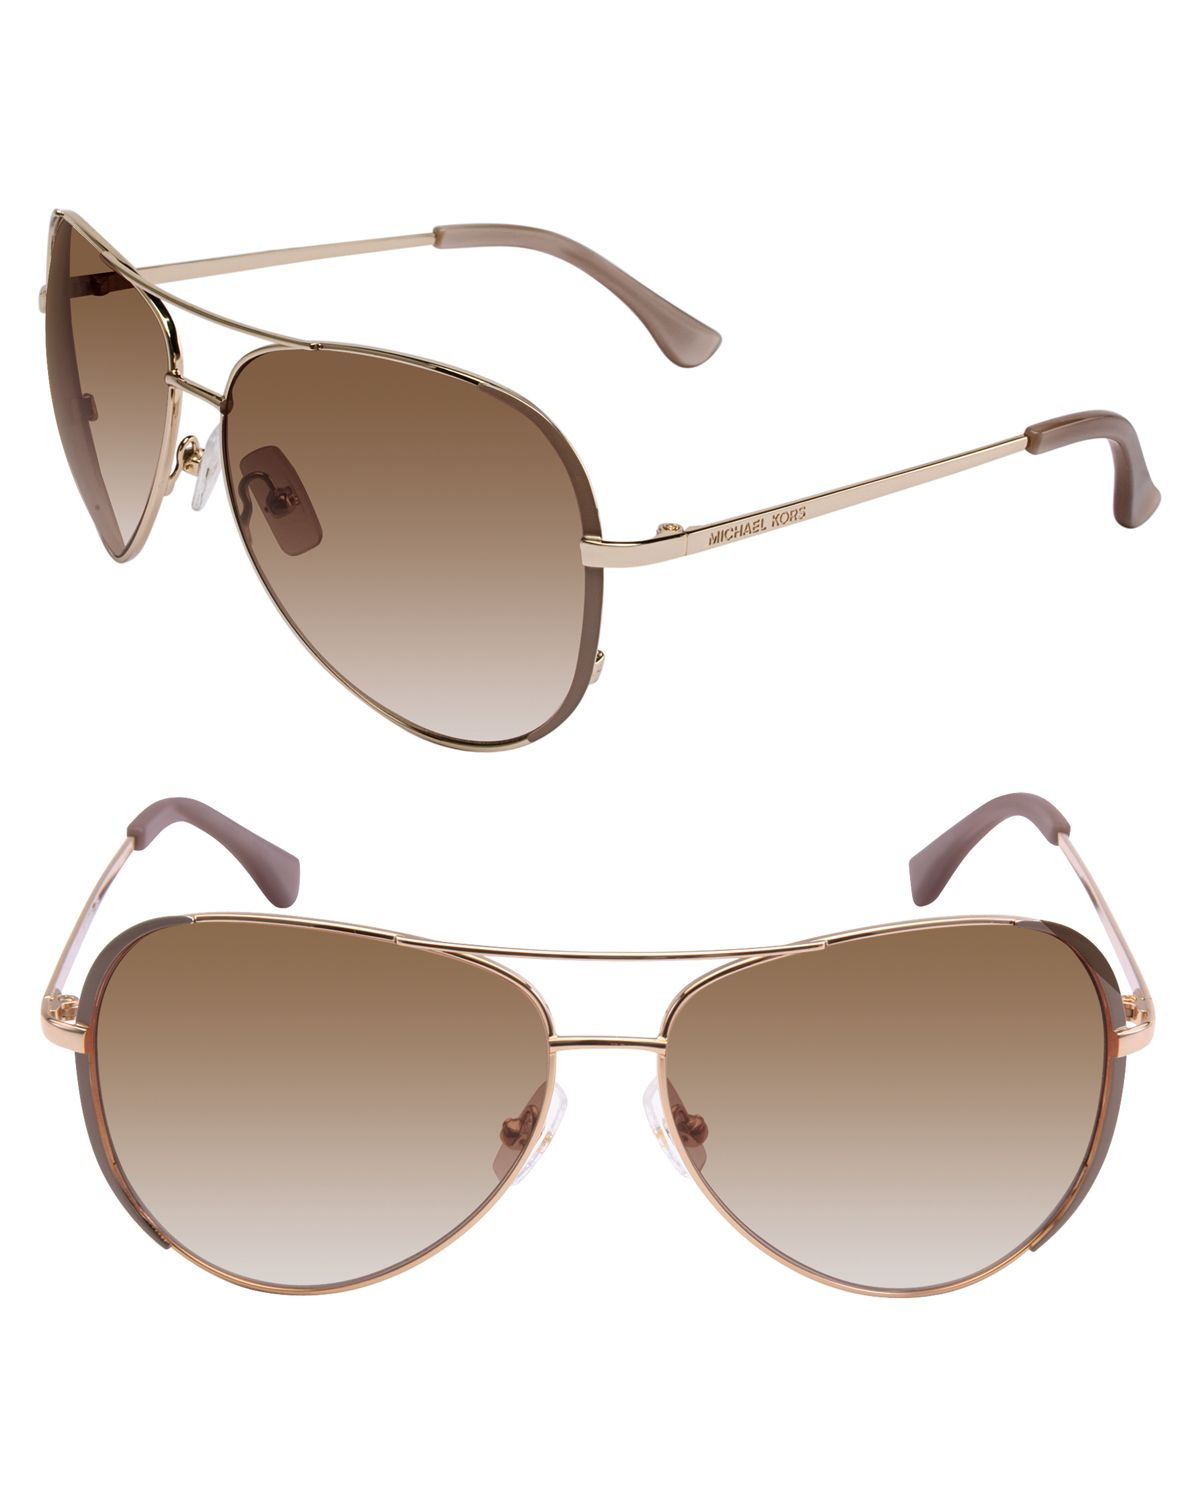 Michael Kors Montrose Sunglasses  michael kors michael sicily aviator sunglasses in gray lyst